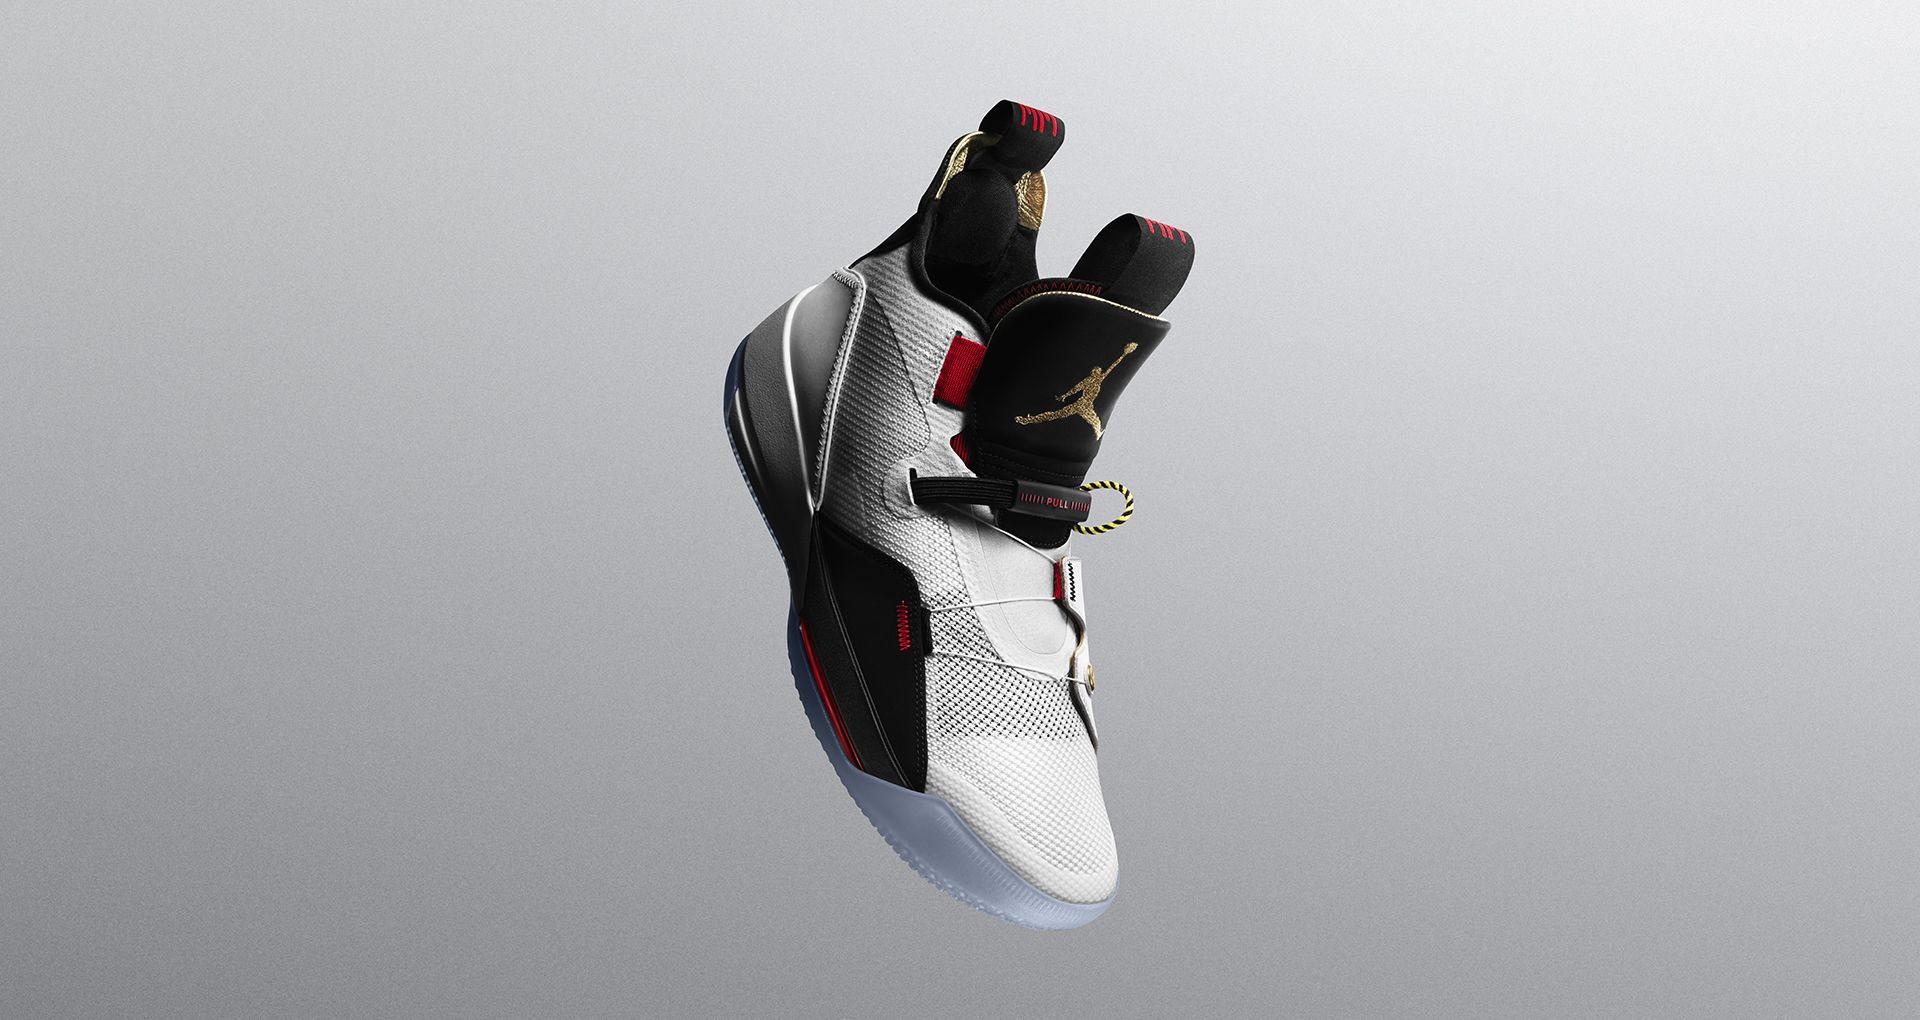 Jordan 33 white metallic gold black